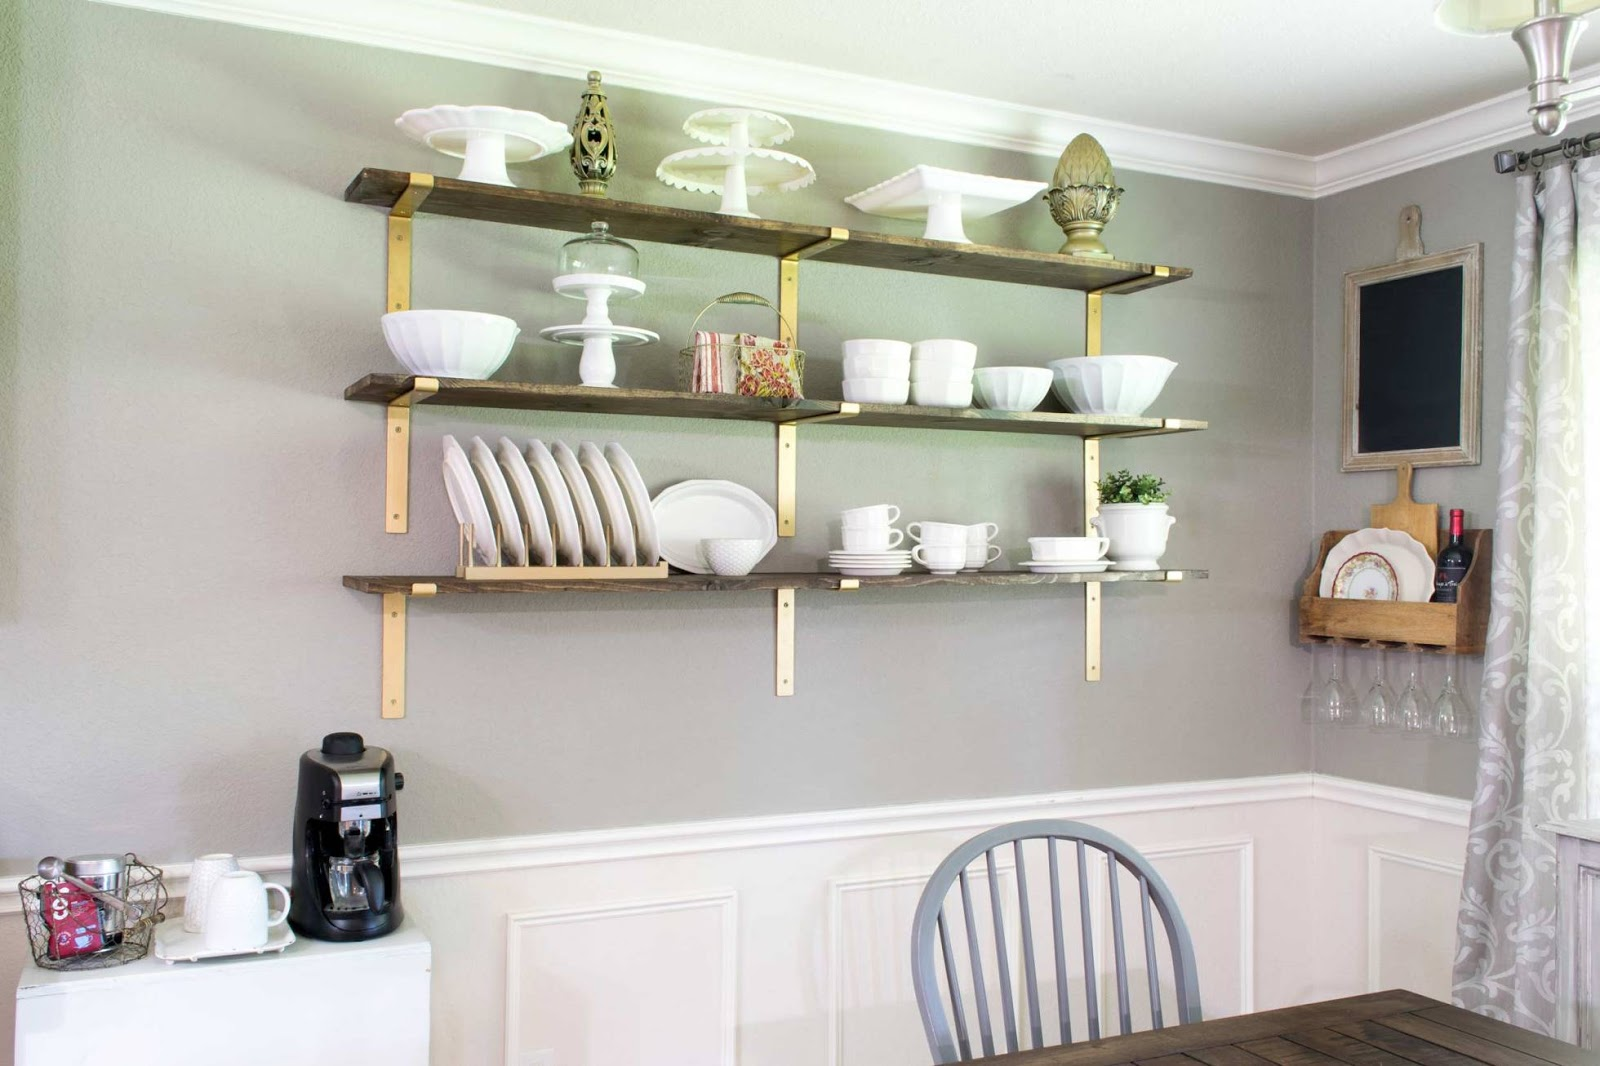 Dining Room Wall Shelves Satisfying Solutions For Decorating A Large Blank Wall